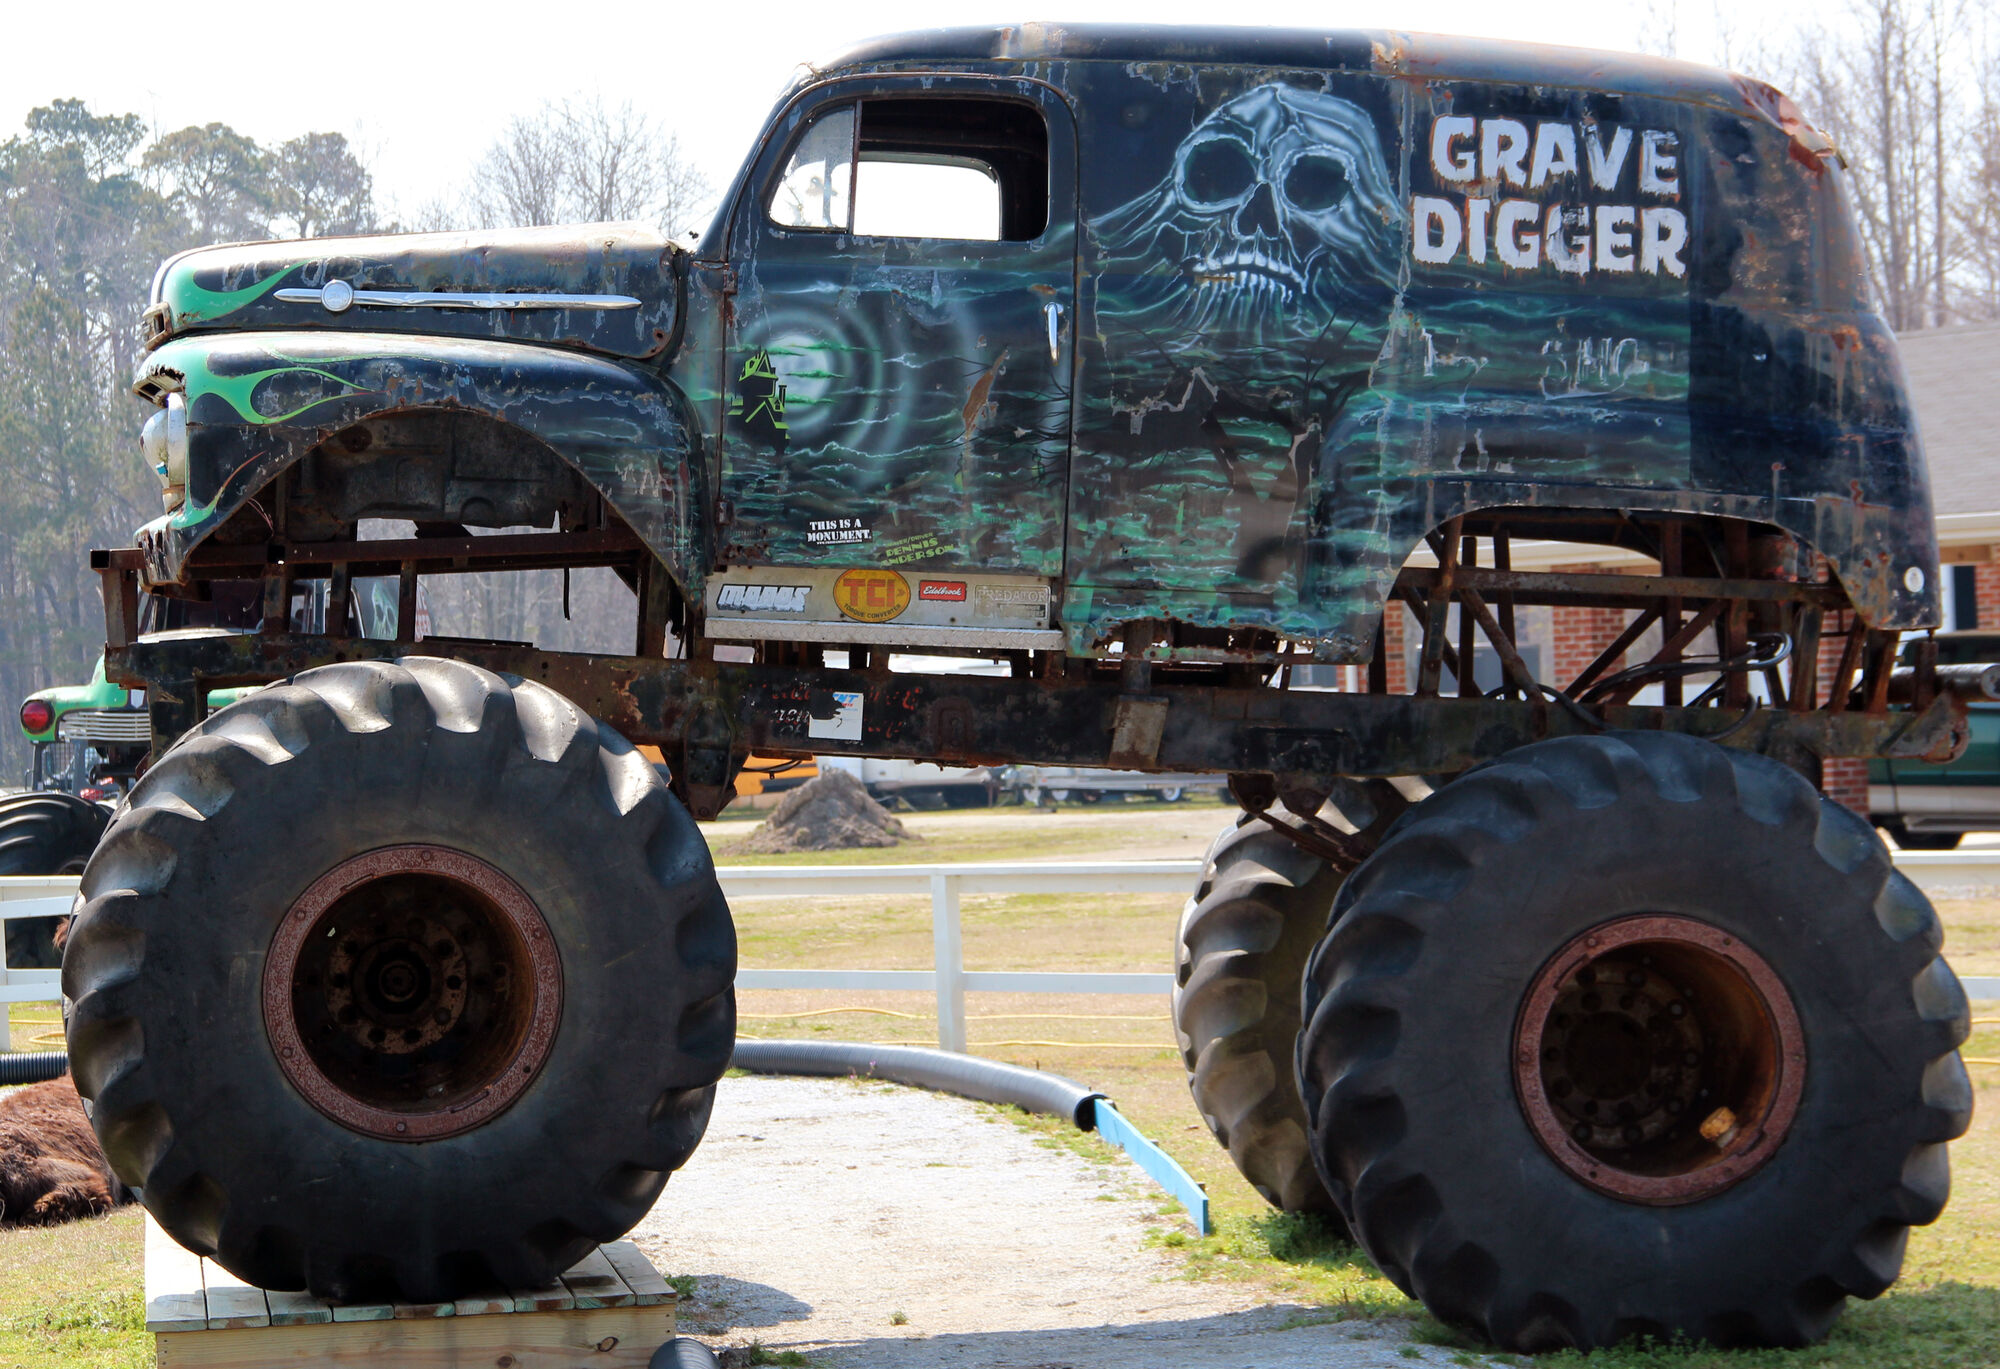 grave digger 1 monster trucks wiki fandom powered by wikia. Black Bedroom Furniture Sets. Home Design Ideas